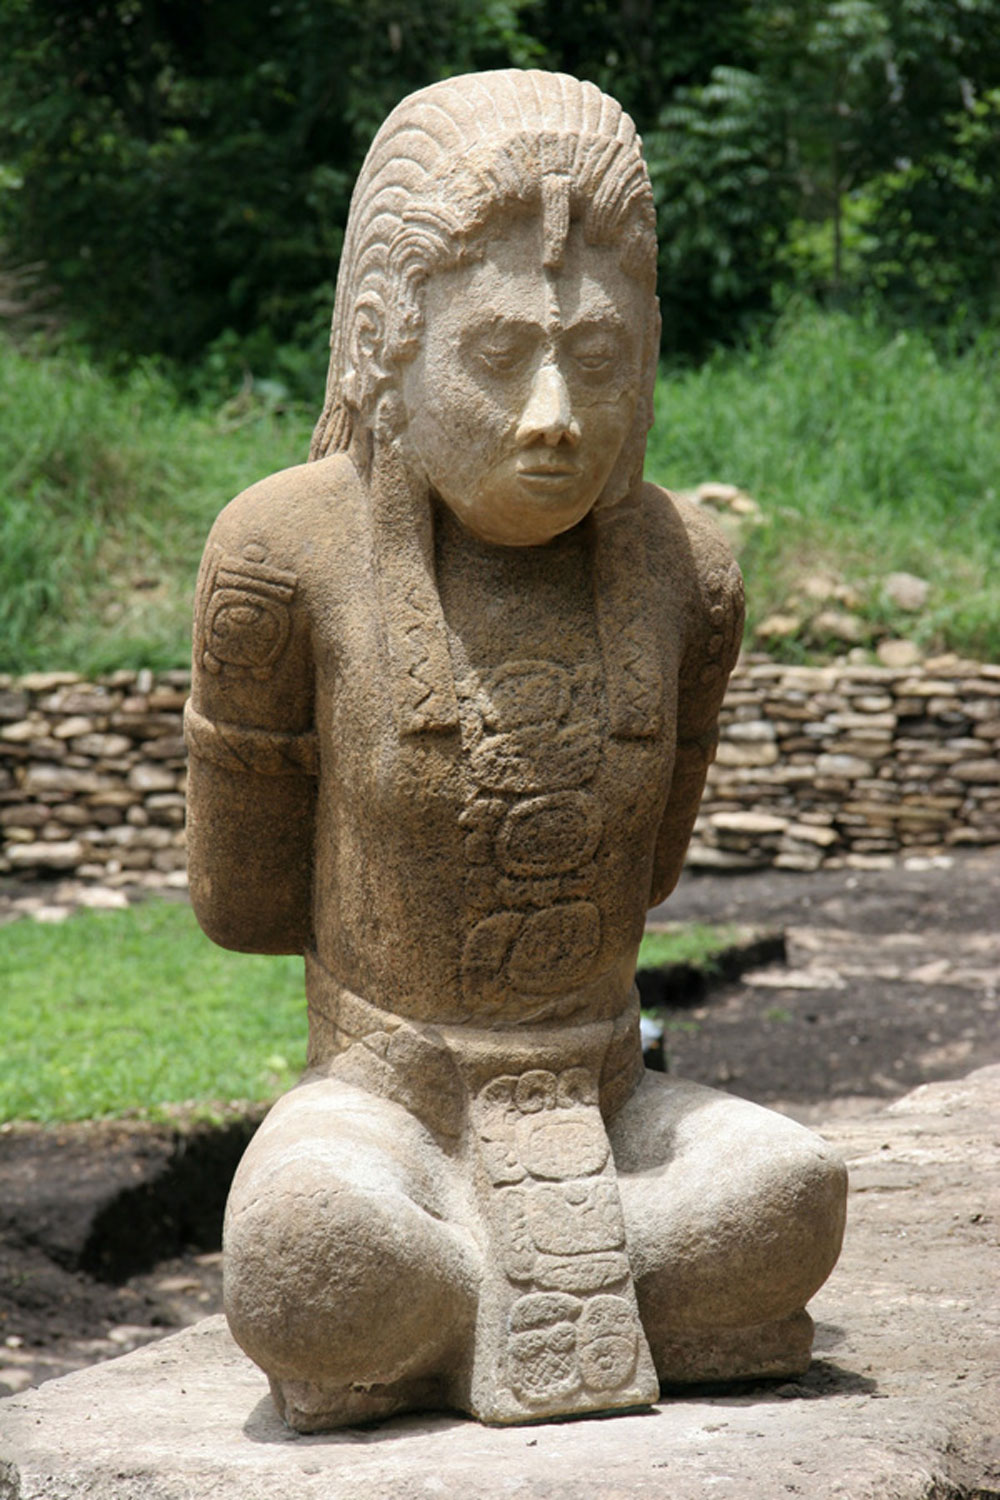 Captive from Palenque at Toniná (paper slips in ears for humiliation).